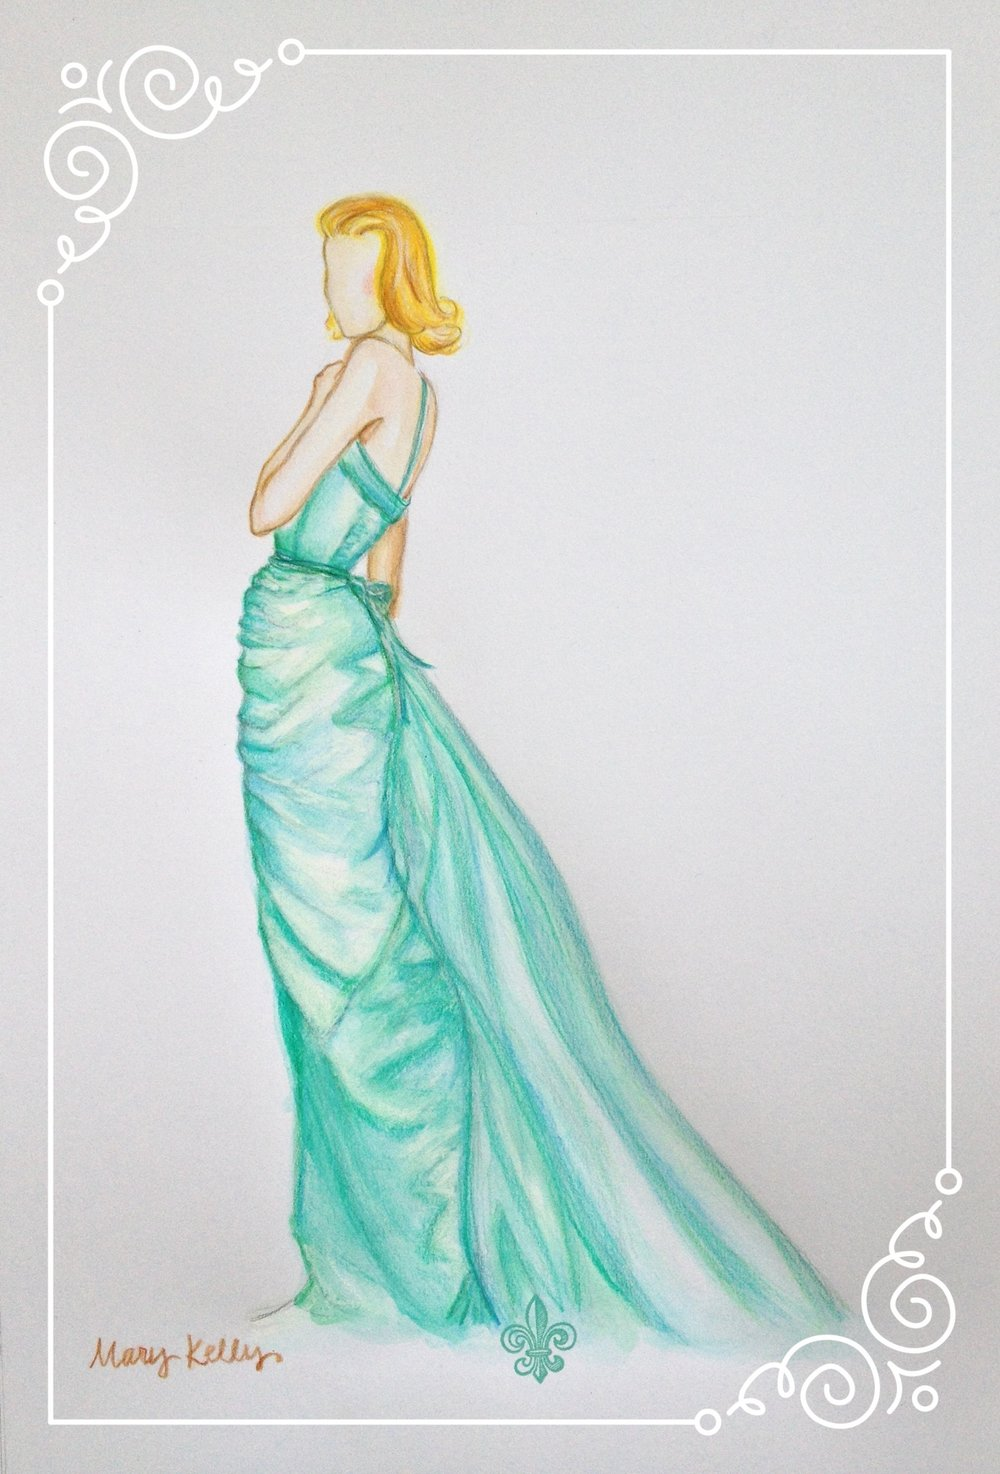 grace's academy award gown, mary kelly designs © 2017